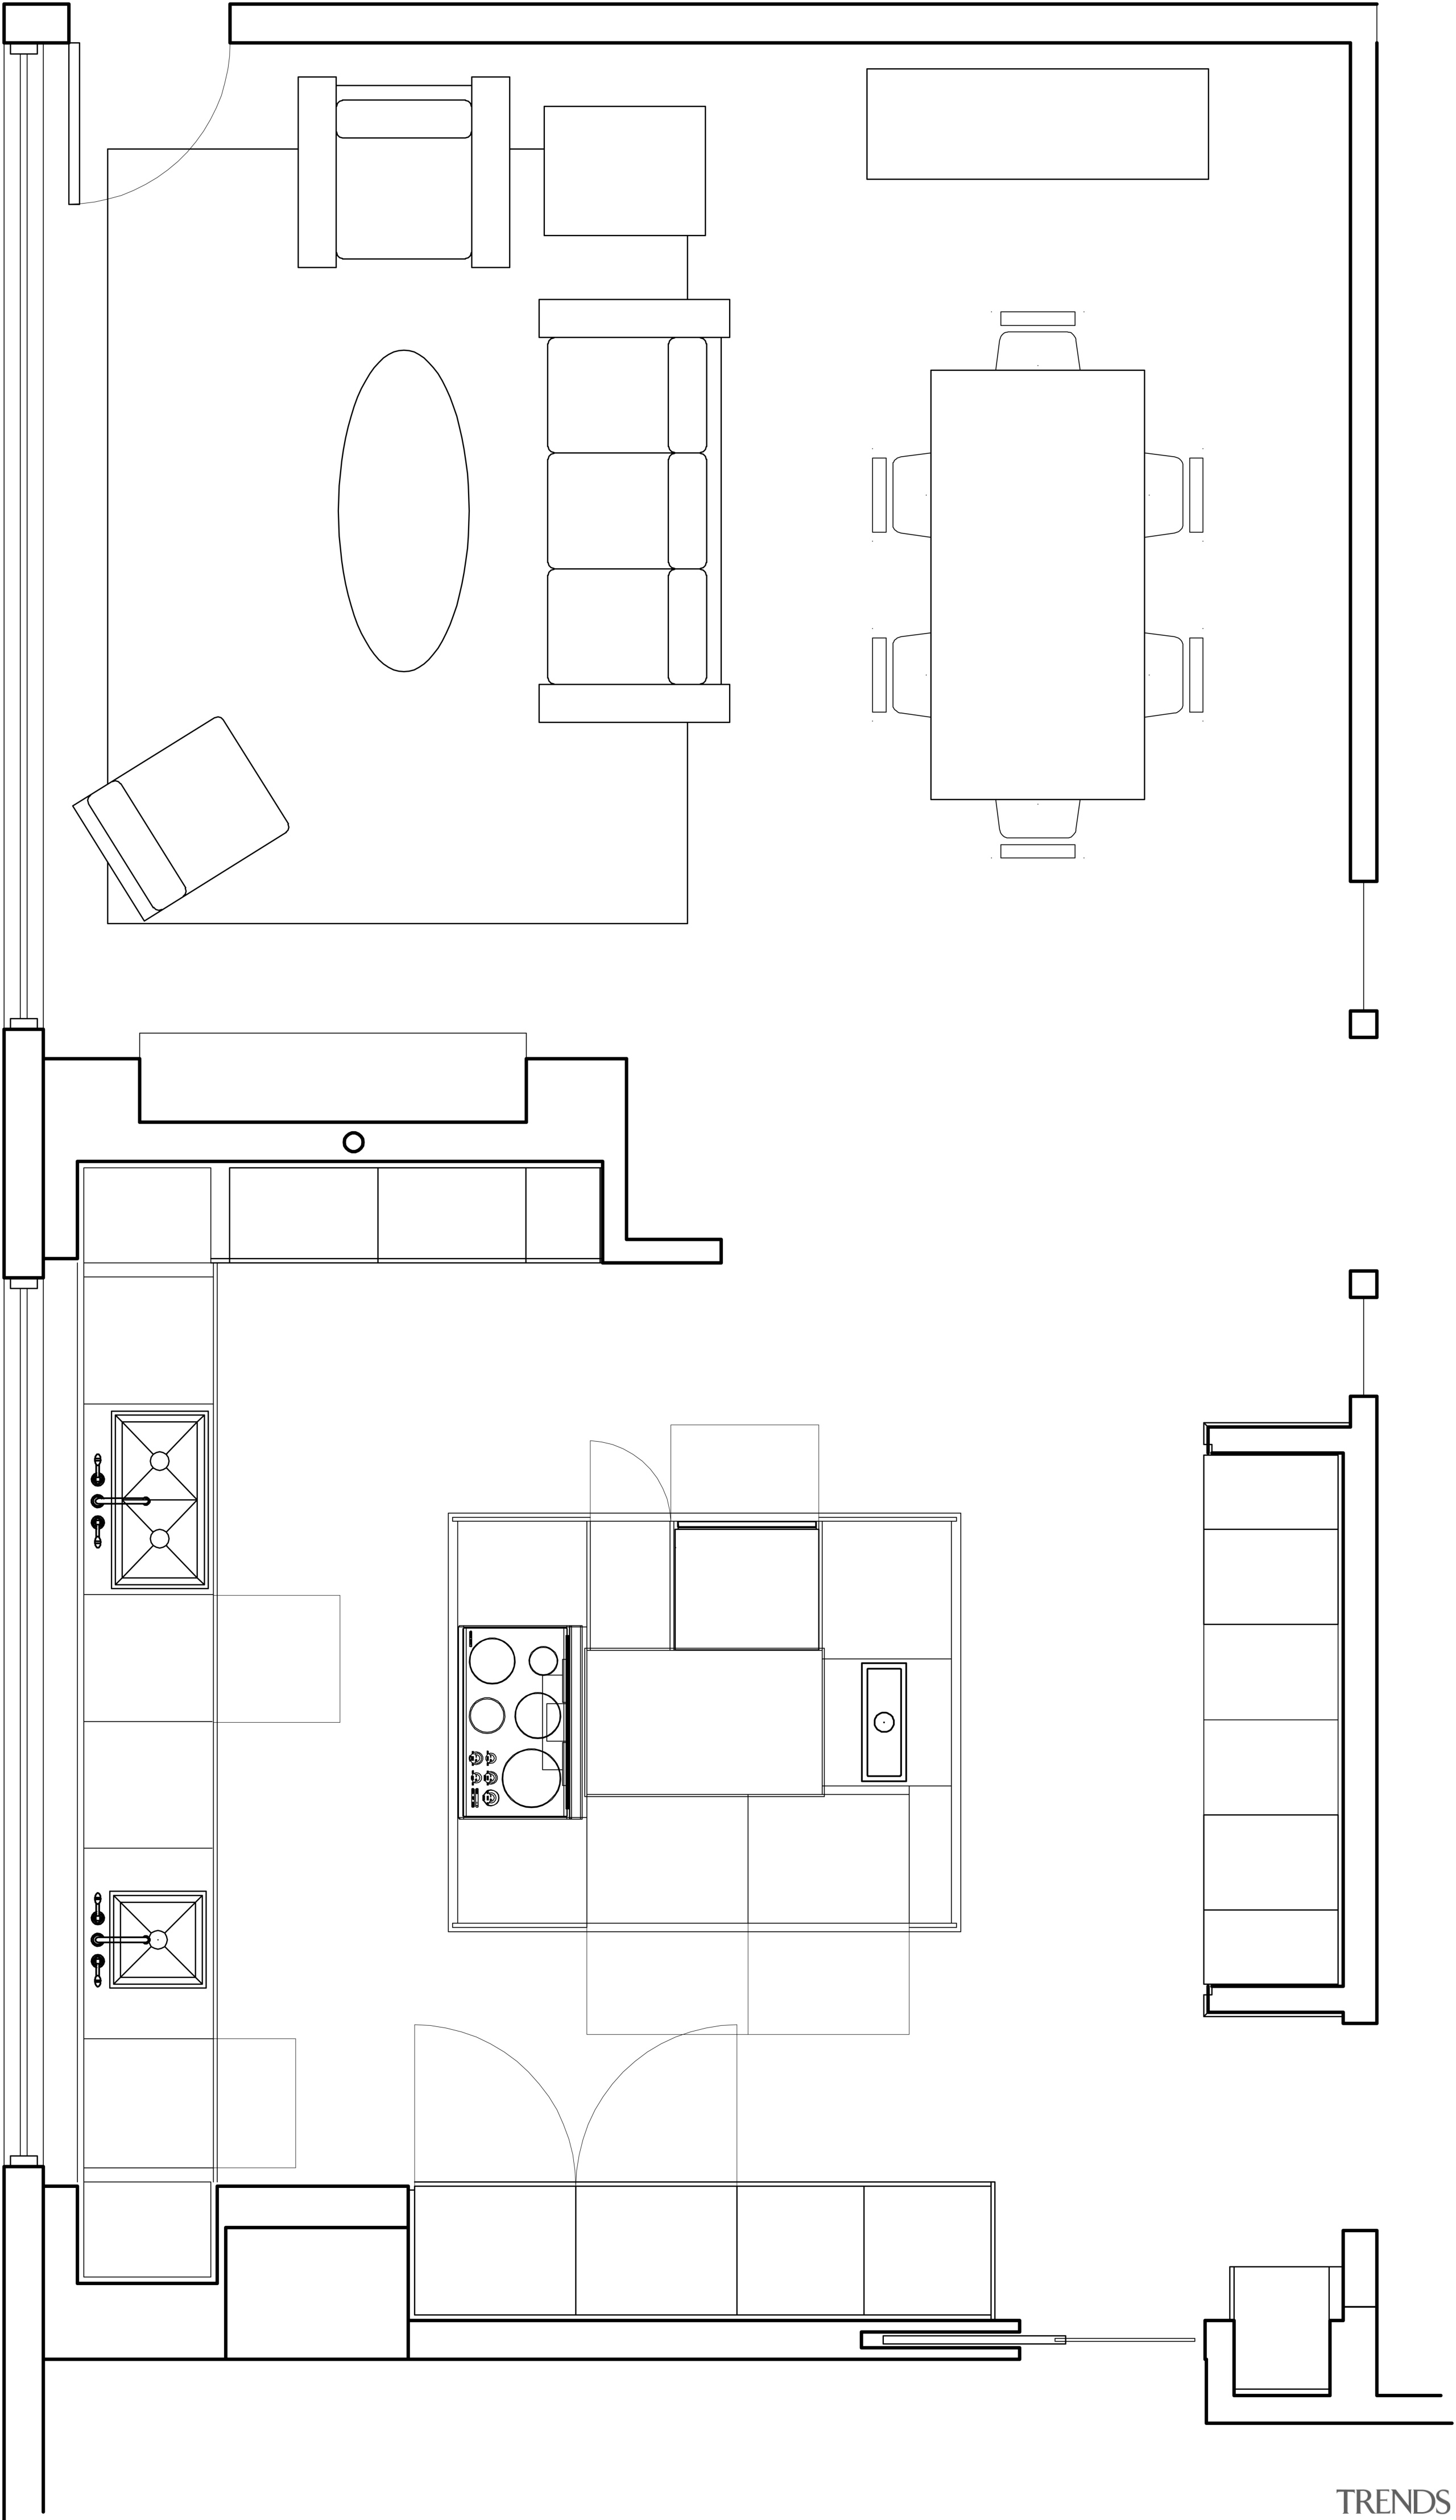 View fo kitchen remodelled with Zebrano Vaneer.  angle, architecture, area, black and white, design, diagram, drawing, floor plan, font, line, monochrome, plan, product, product design, square, structure, technical drawing, text, white, white